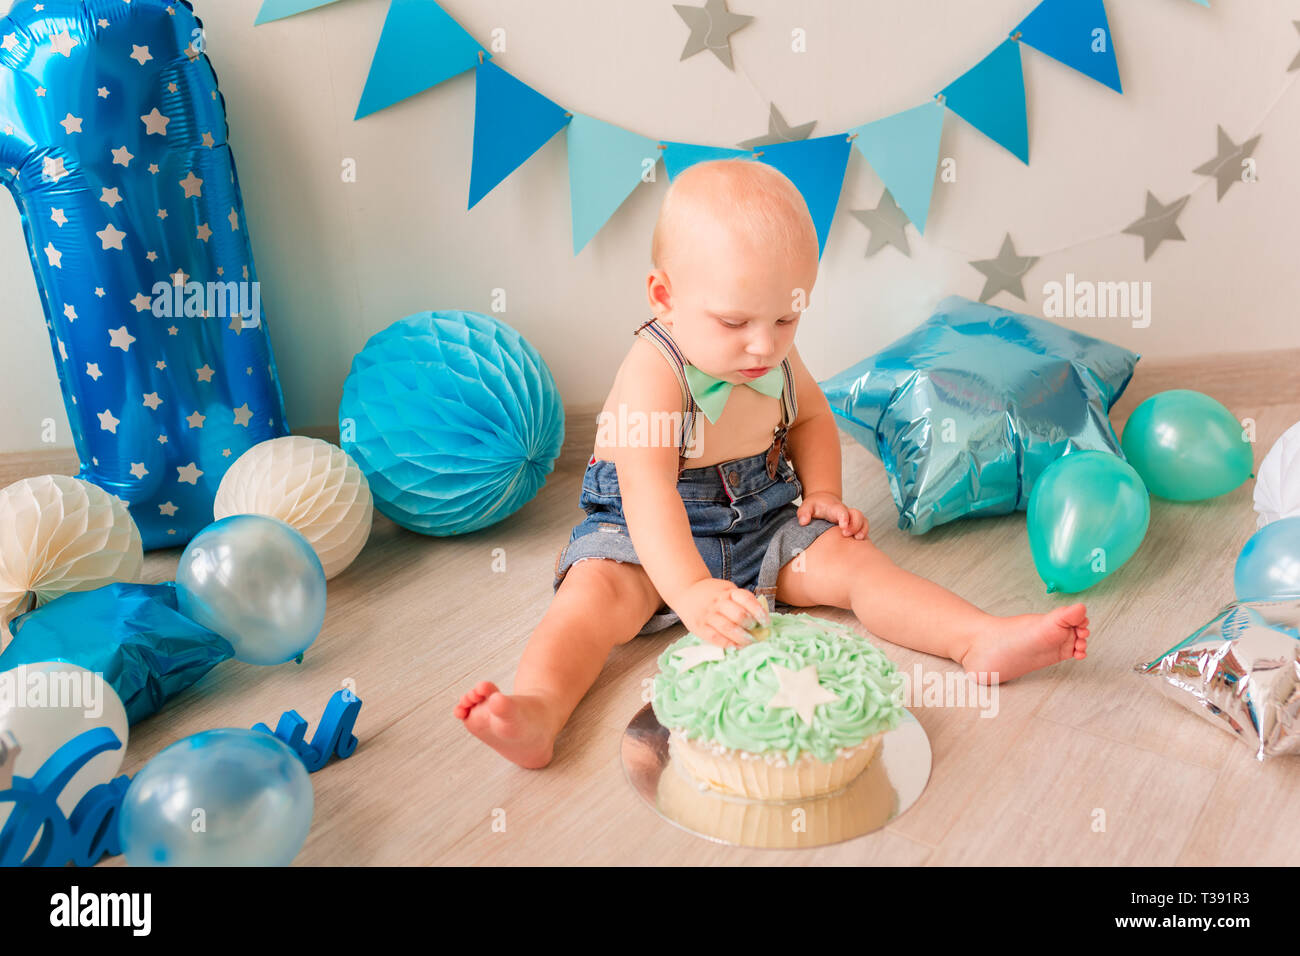 Adorable Baby Boy Celebrating His First Birthday Smash Cake Party